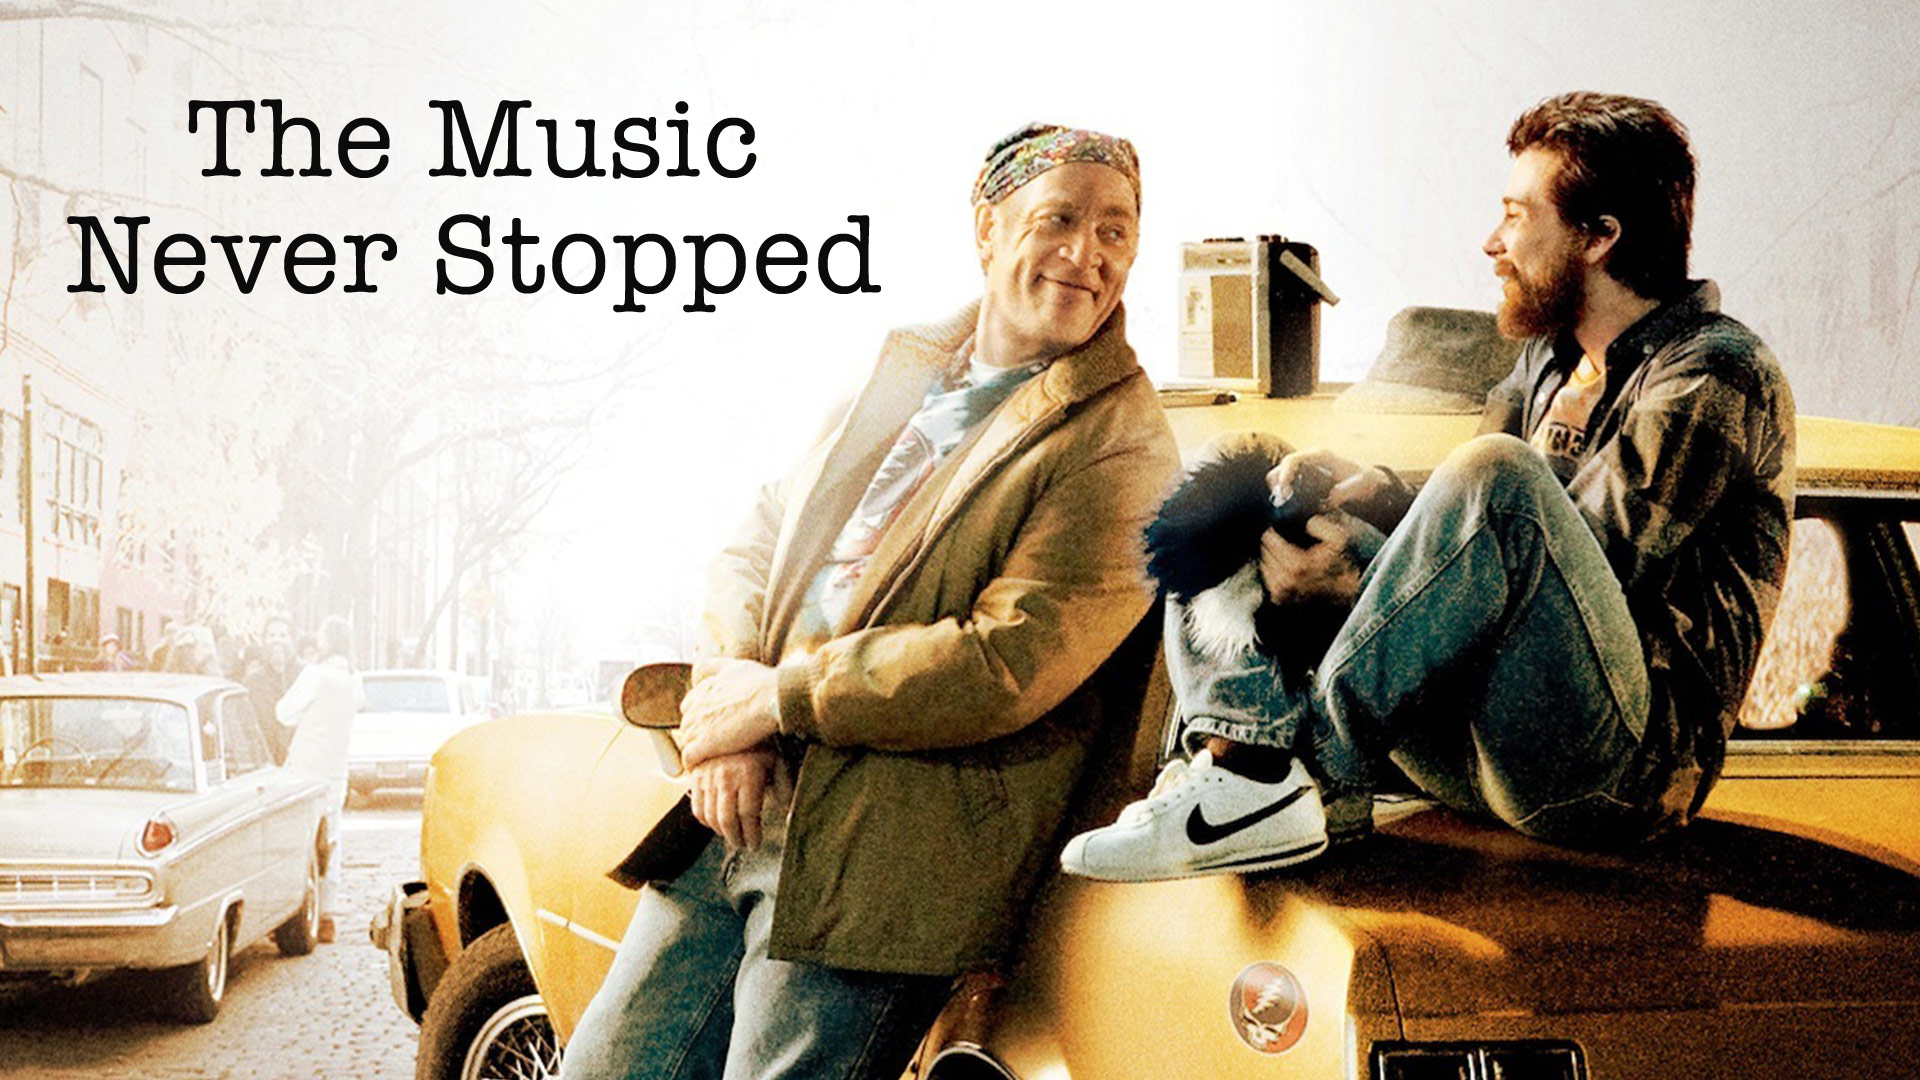 The Music Never Stopped